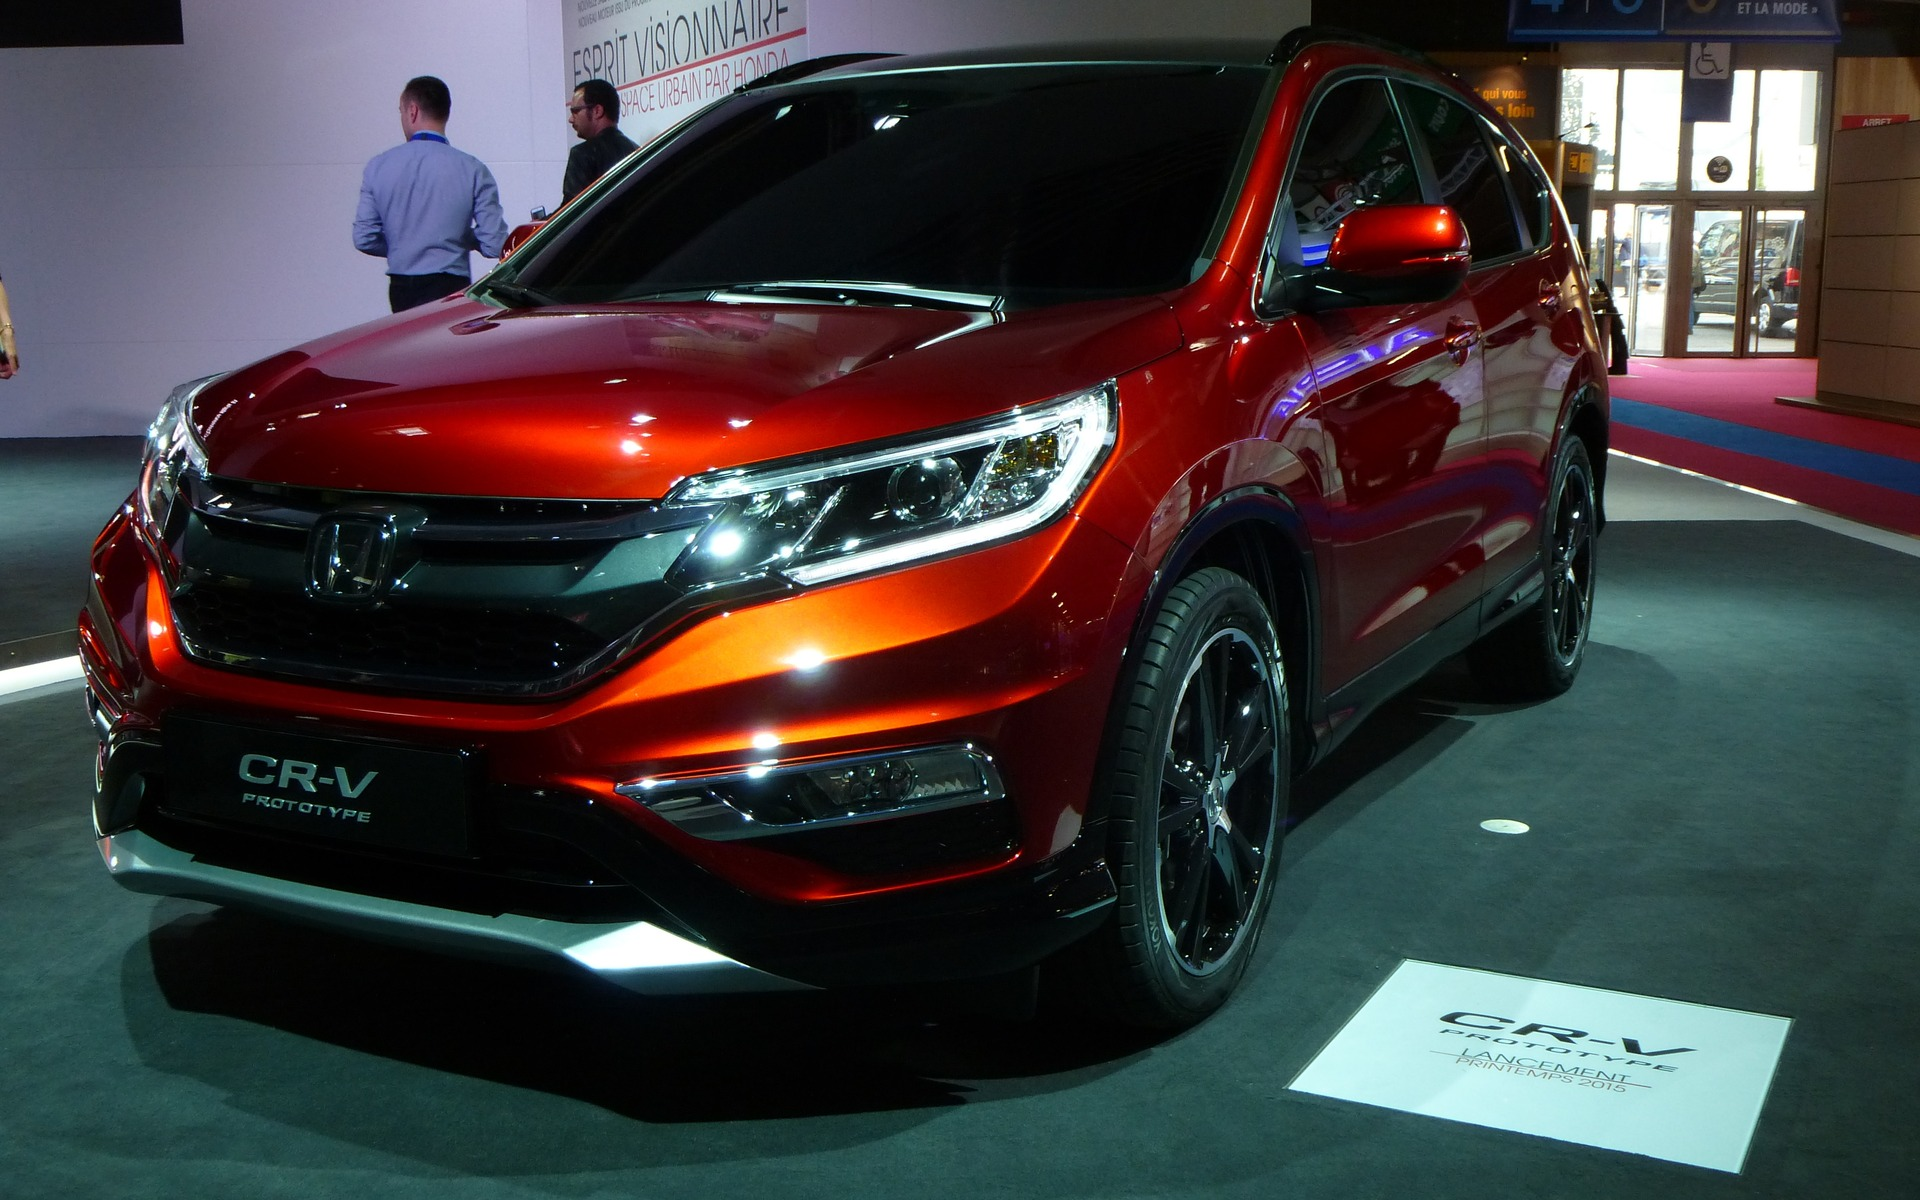 Honda cr v prototype 2015 faut le faire guide auto for Garage web car saint jean du falga avis